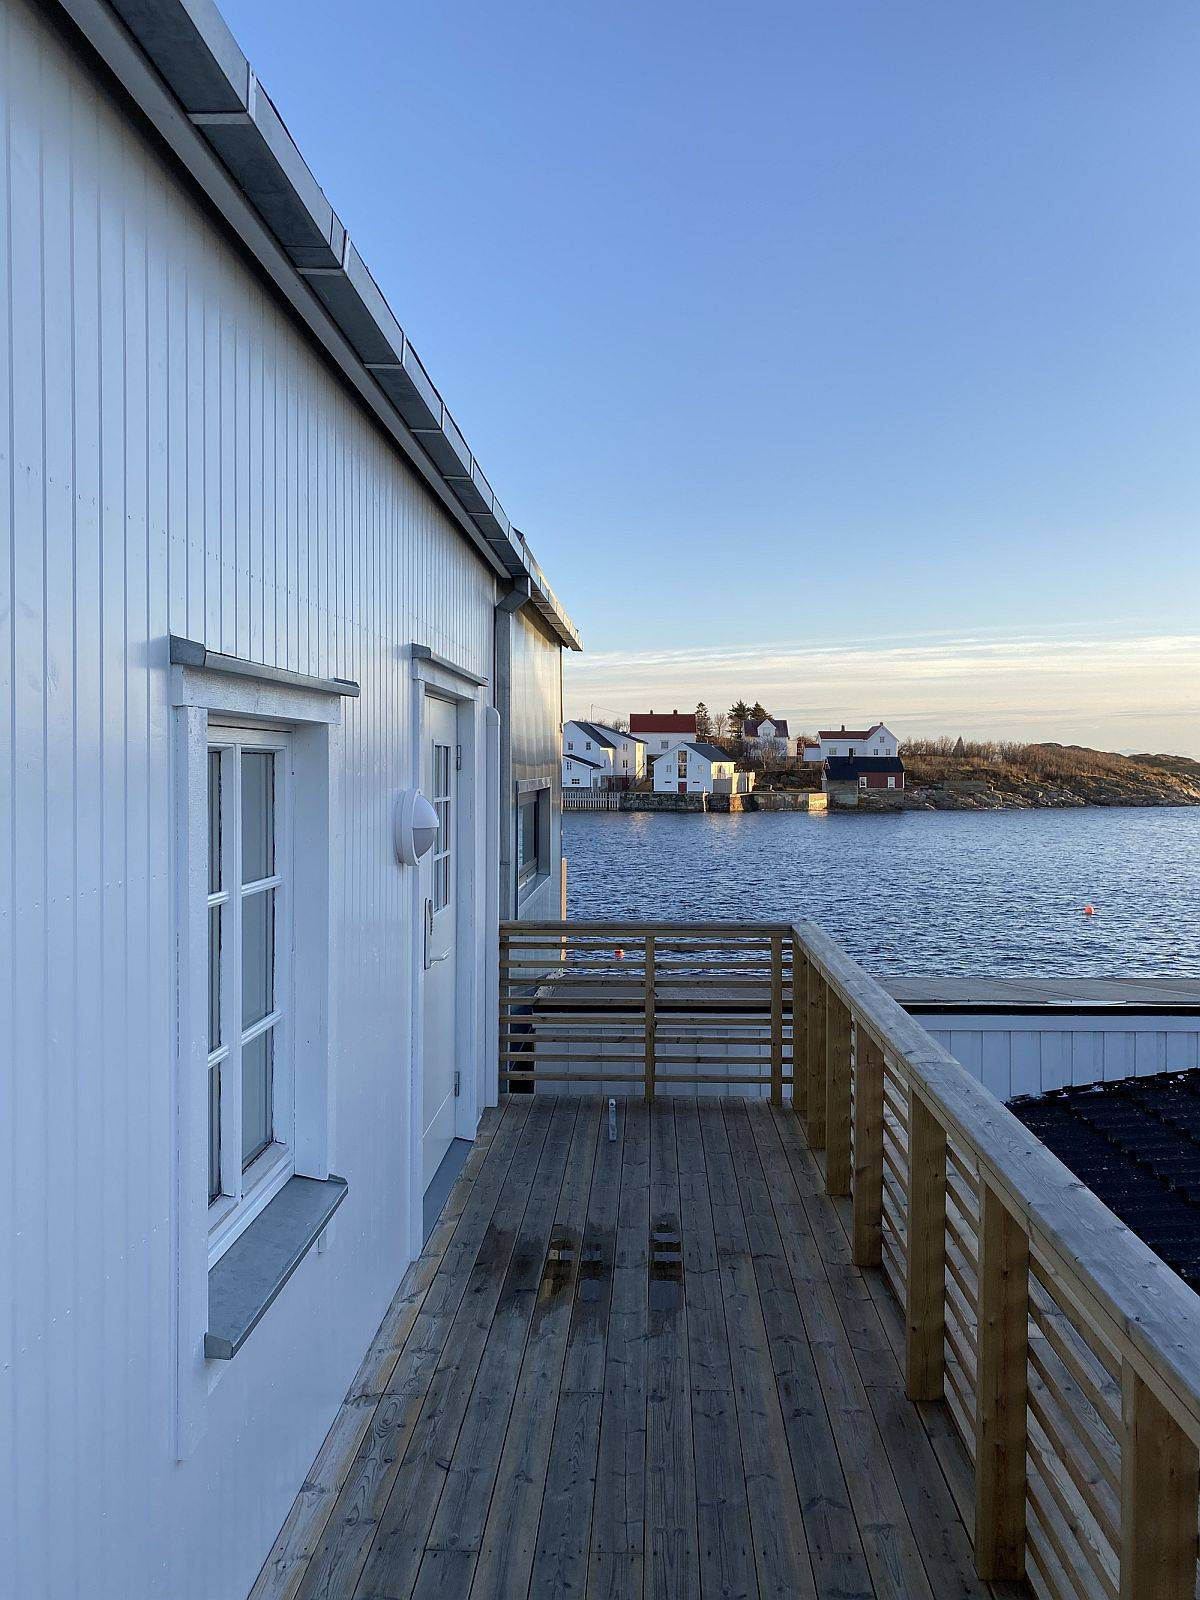 Amazing-views-of-the-habour-and-the-ebautiful-village-of-henningsvaer-steal-the-spotlight-at-this-home-95099